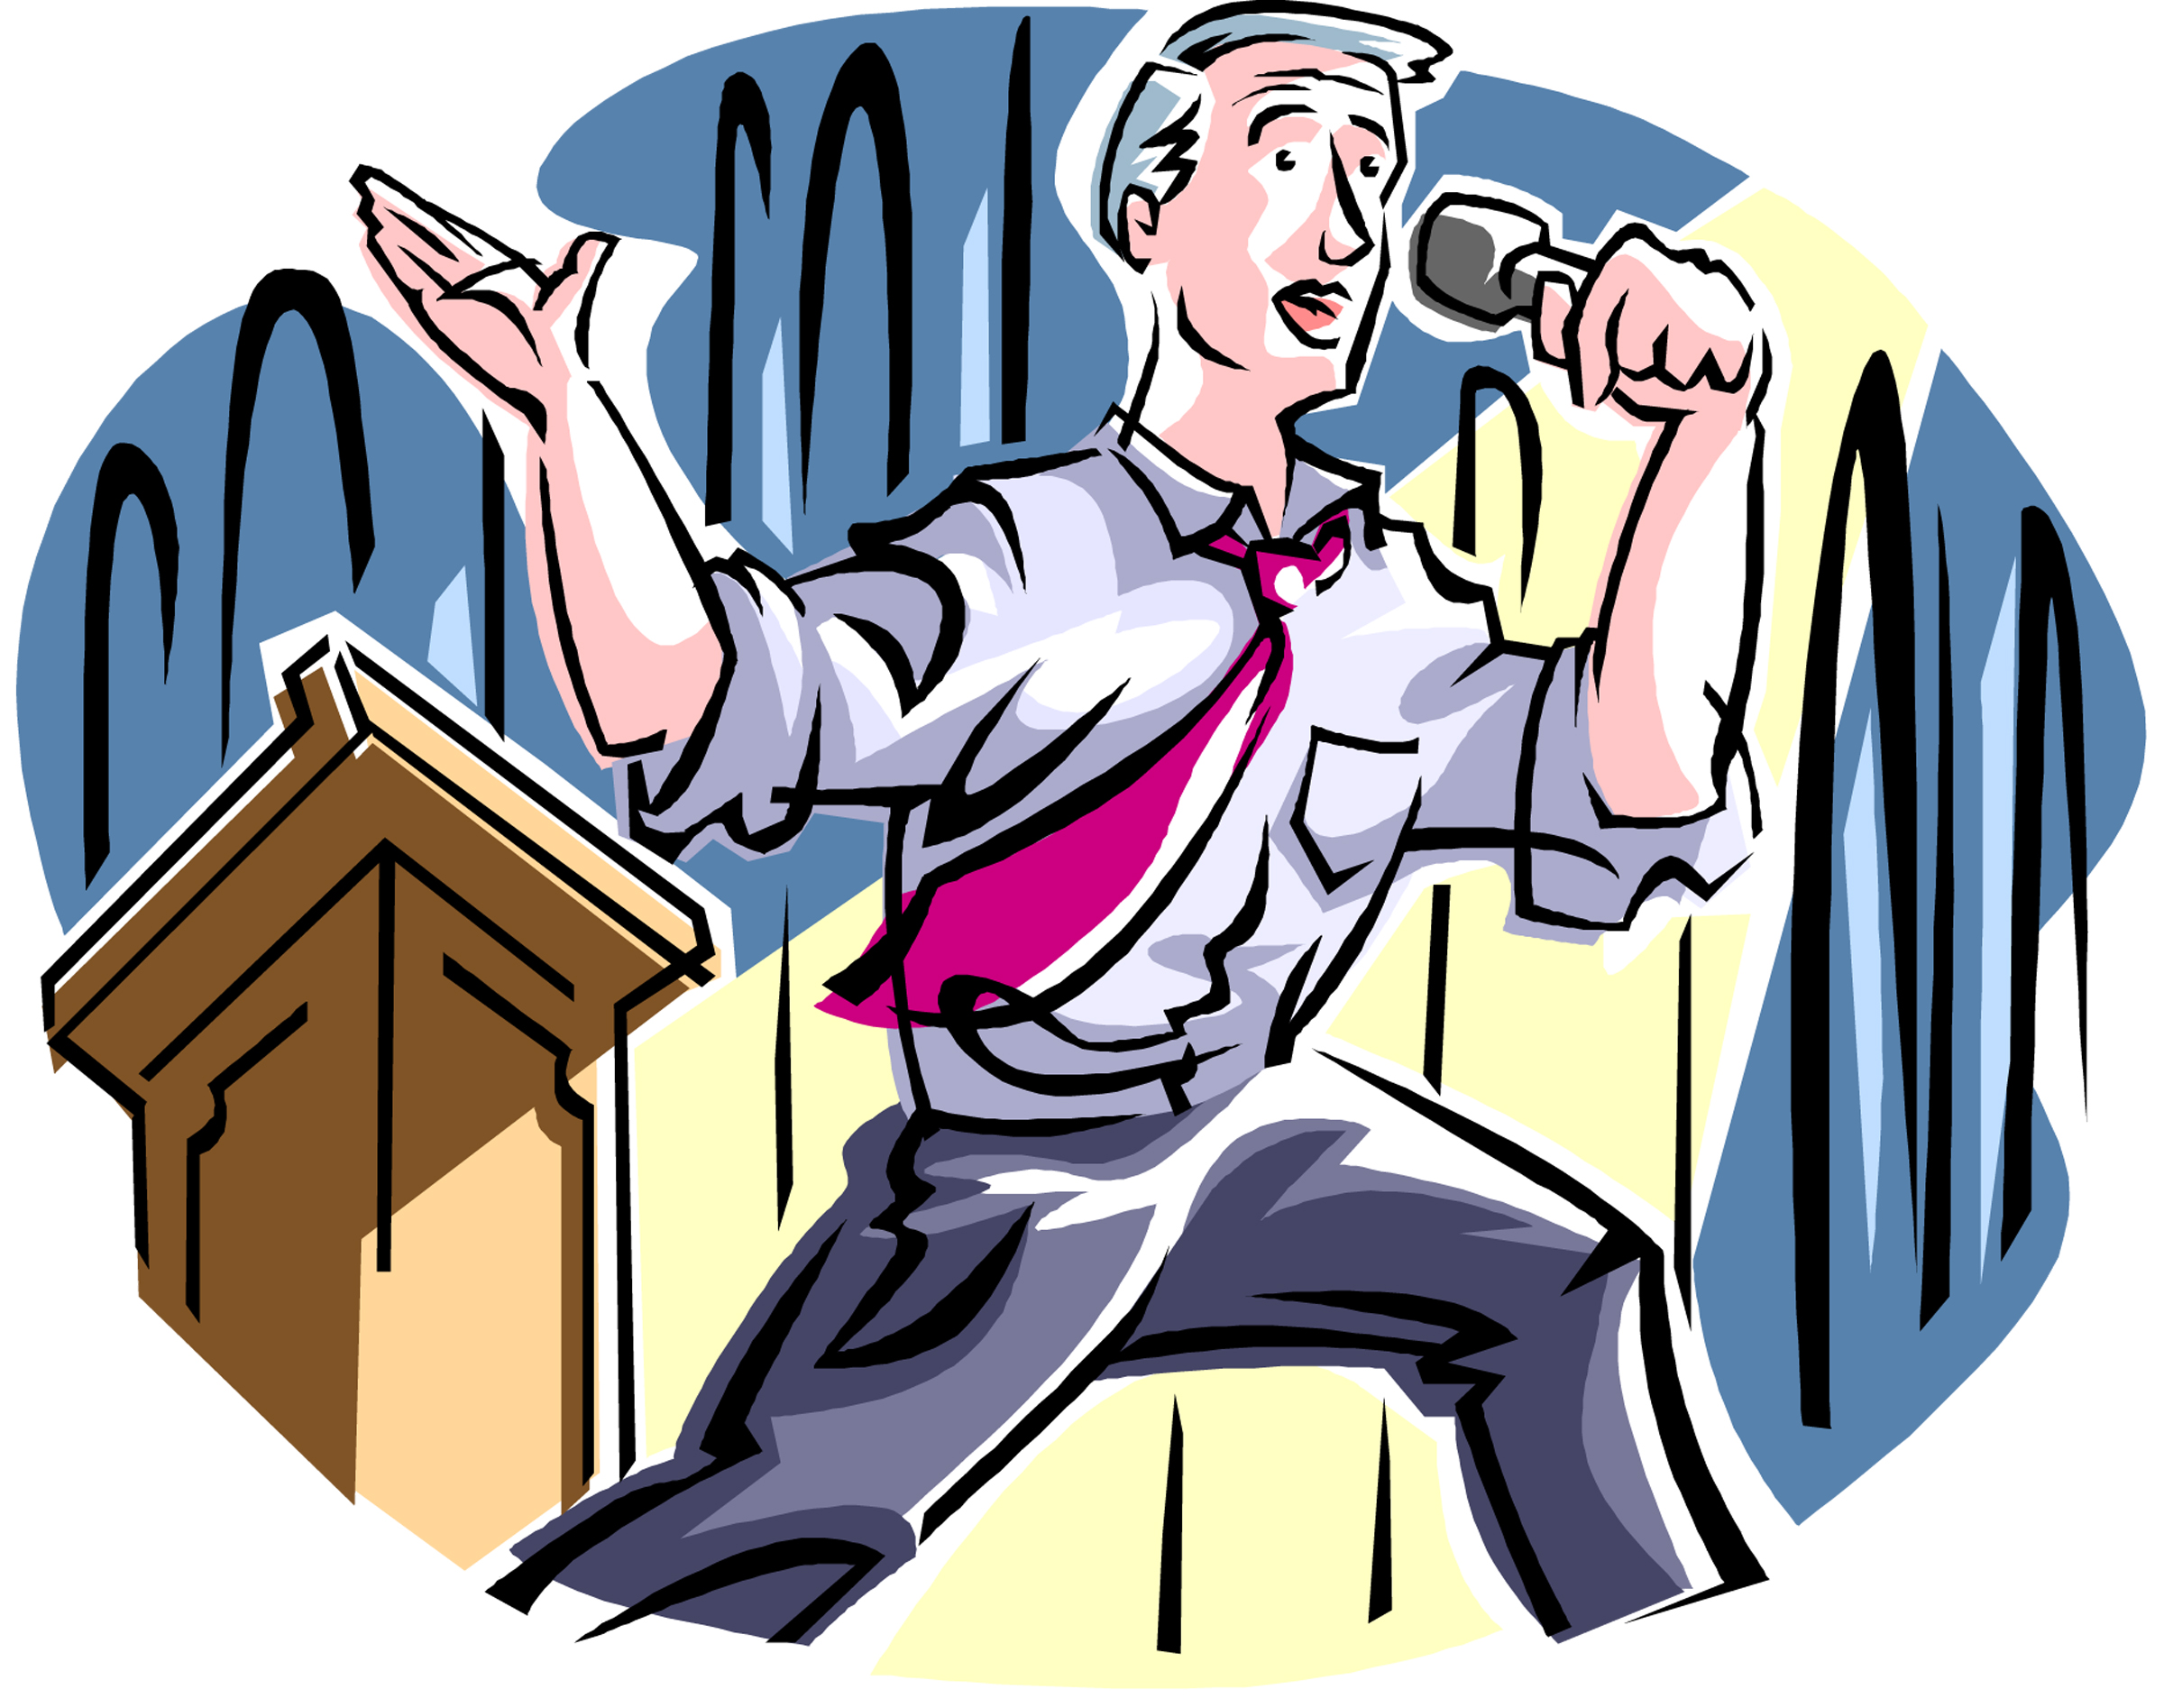 Speech clipart motivational speaker. Public speaking what are